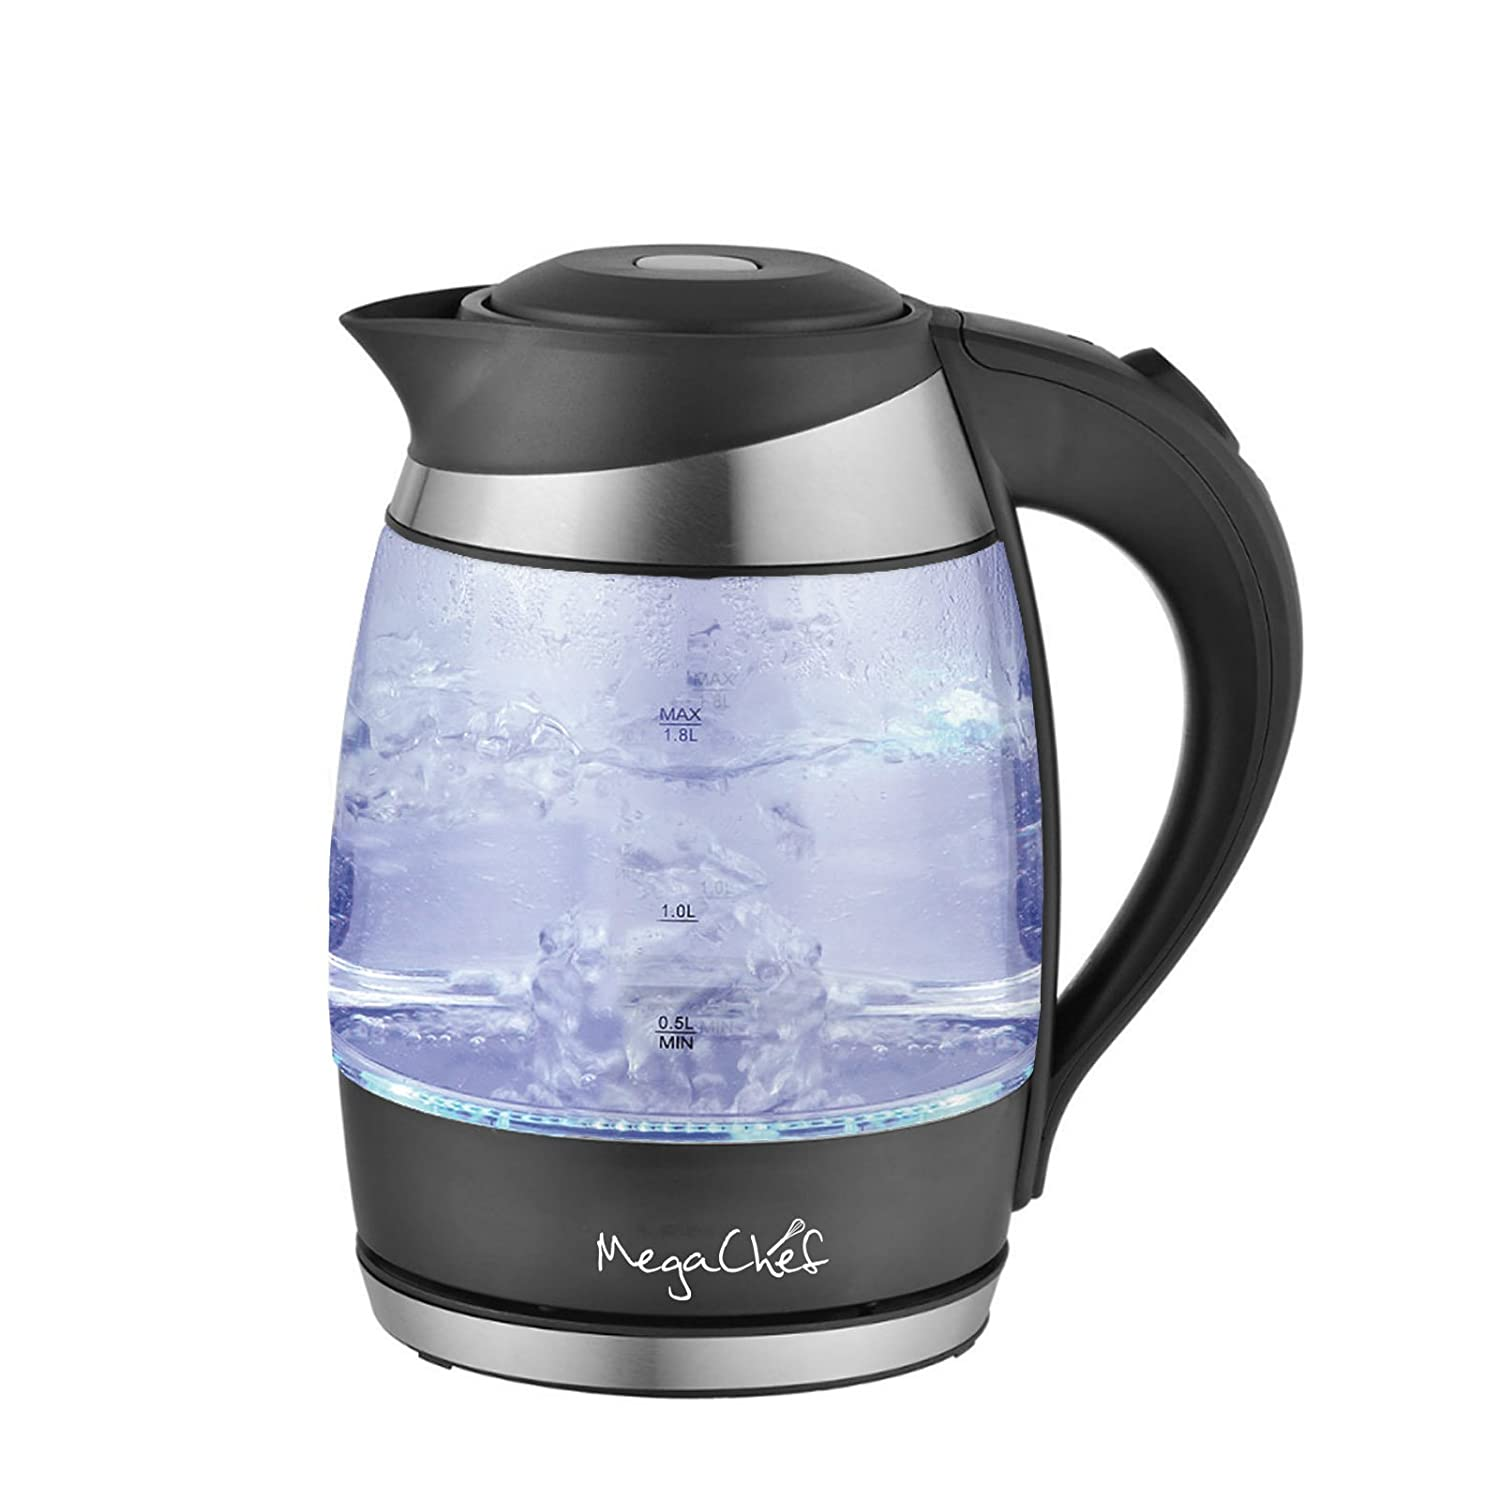 MegaChef 1.8Lt. Stainless Steel and Glass Electric Tea Kettle